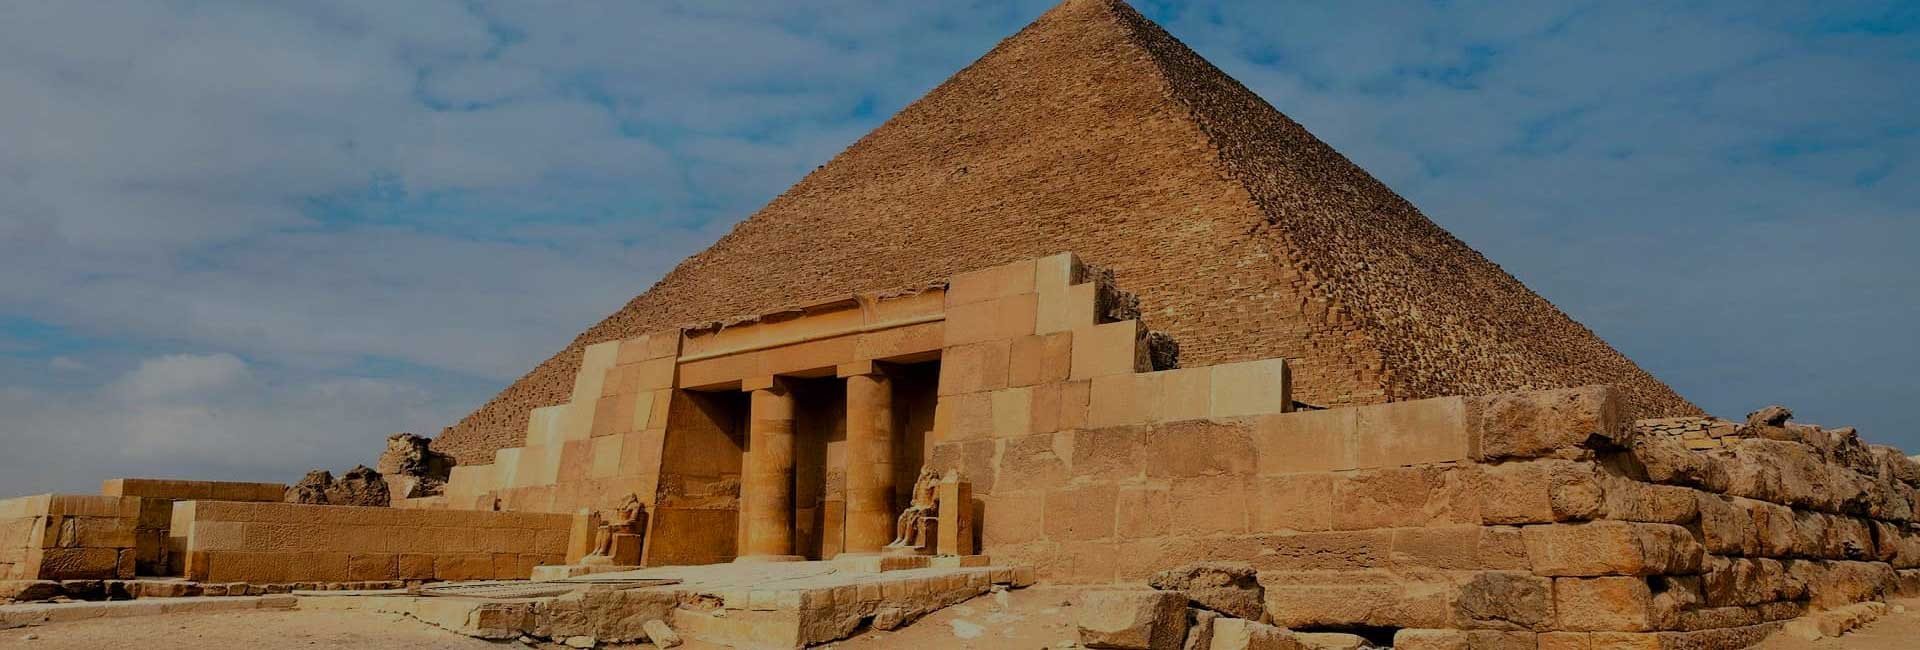 Day Trip To Cairo By Flight